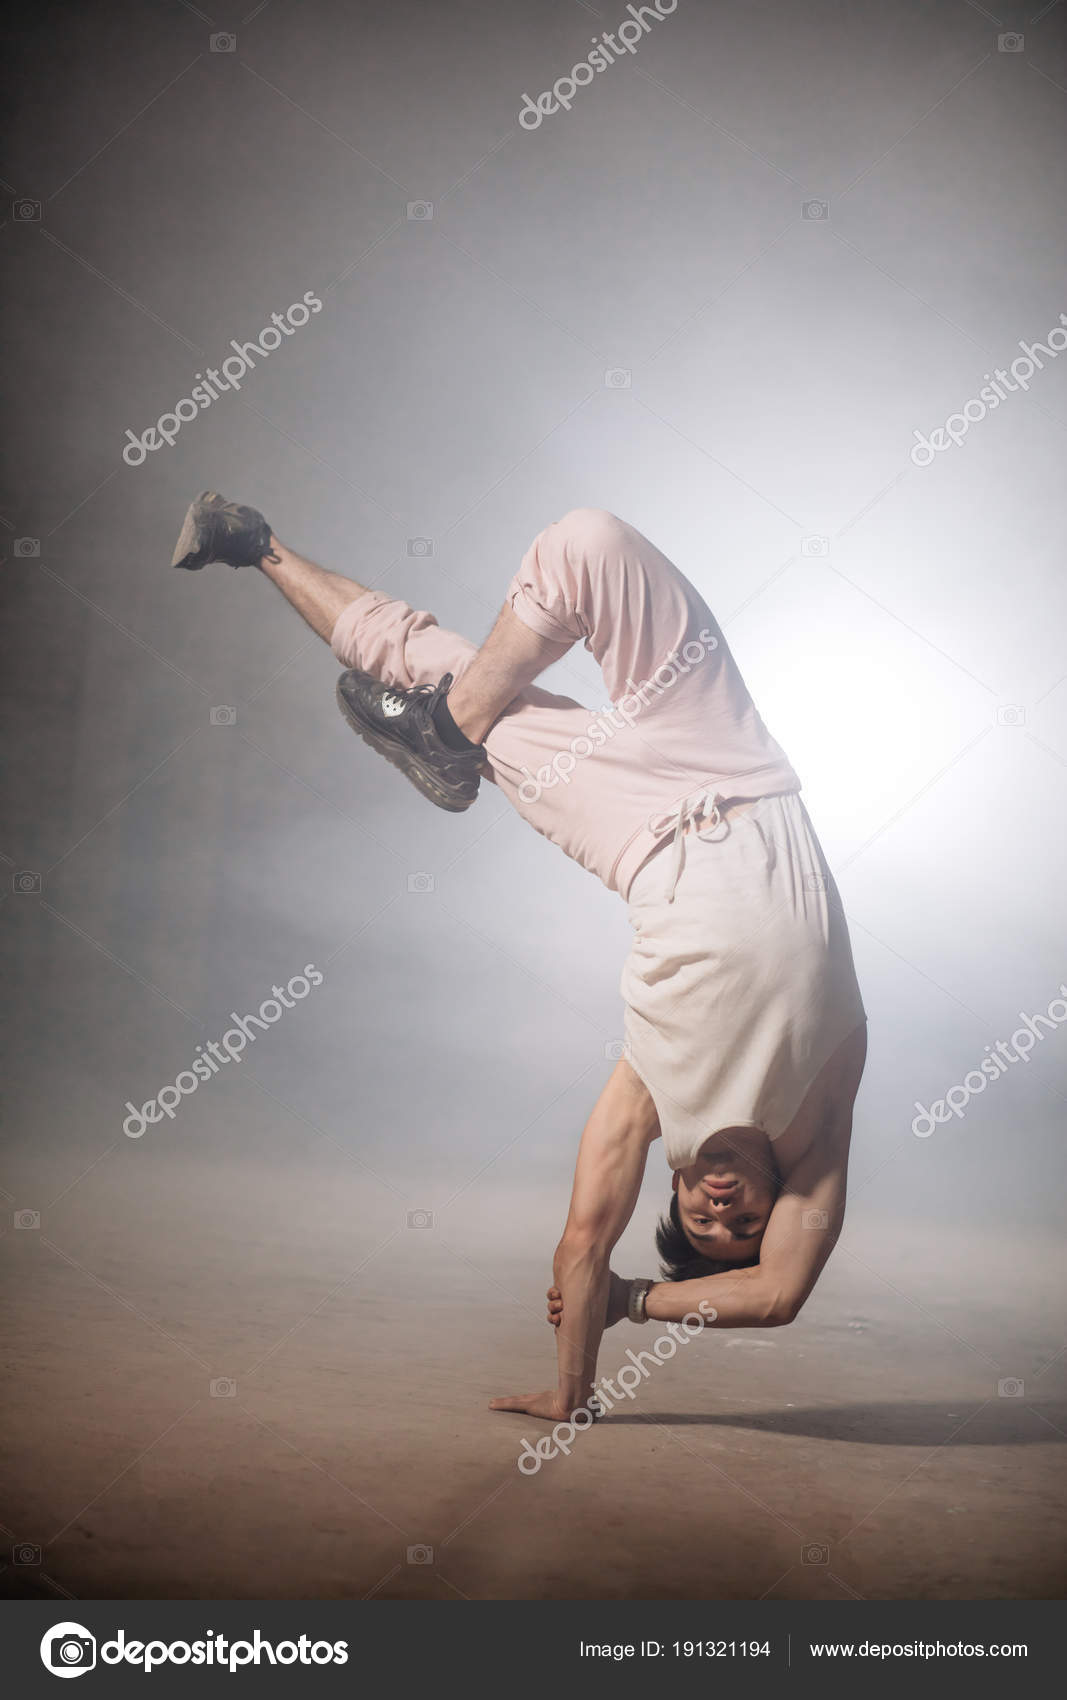 Man With Strong Muscles On Arms Doing Upside Down Stunt Stock